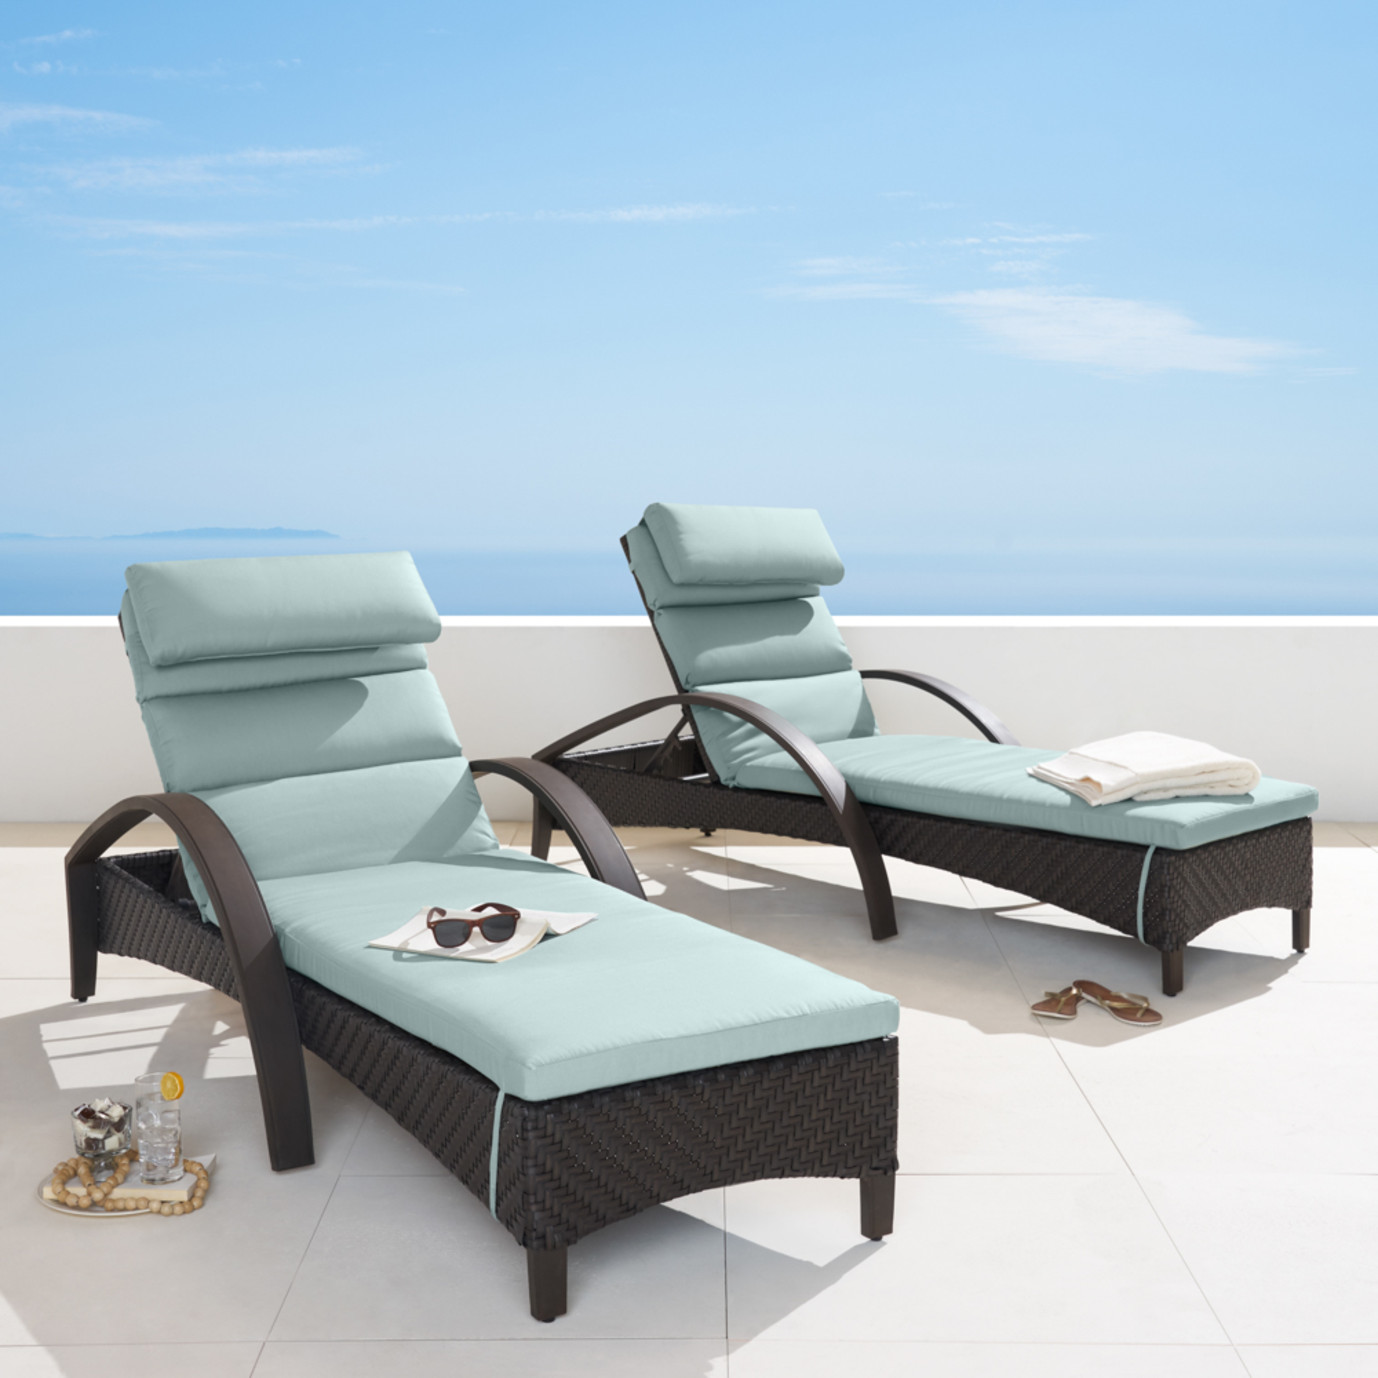 Barcelo™ Chaise Lounge 2pk - Bliss Blue